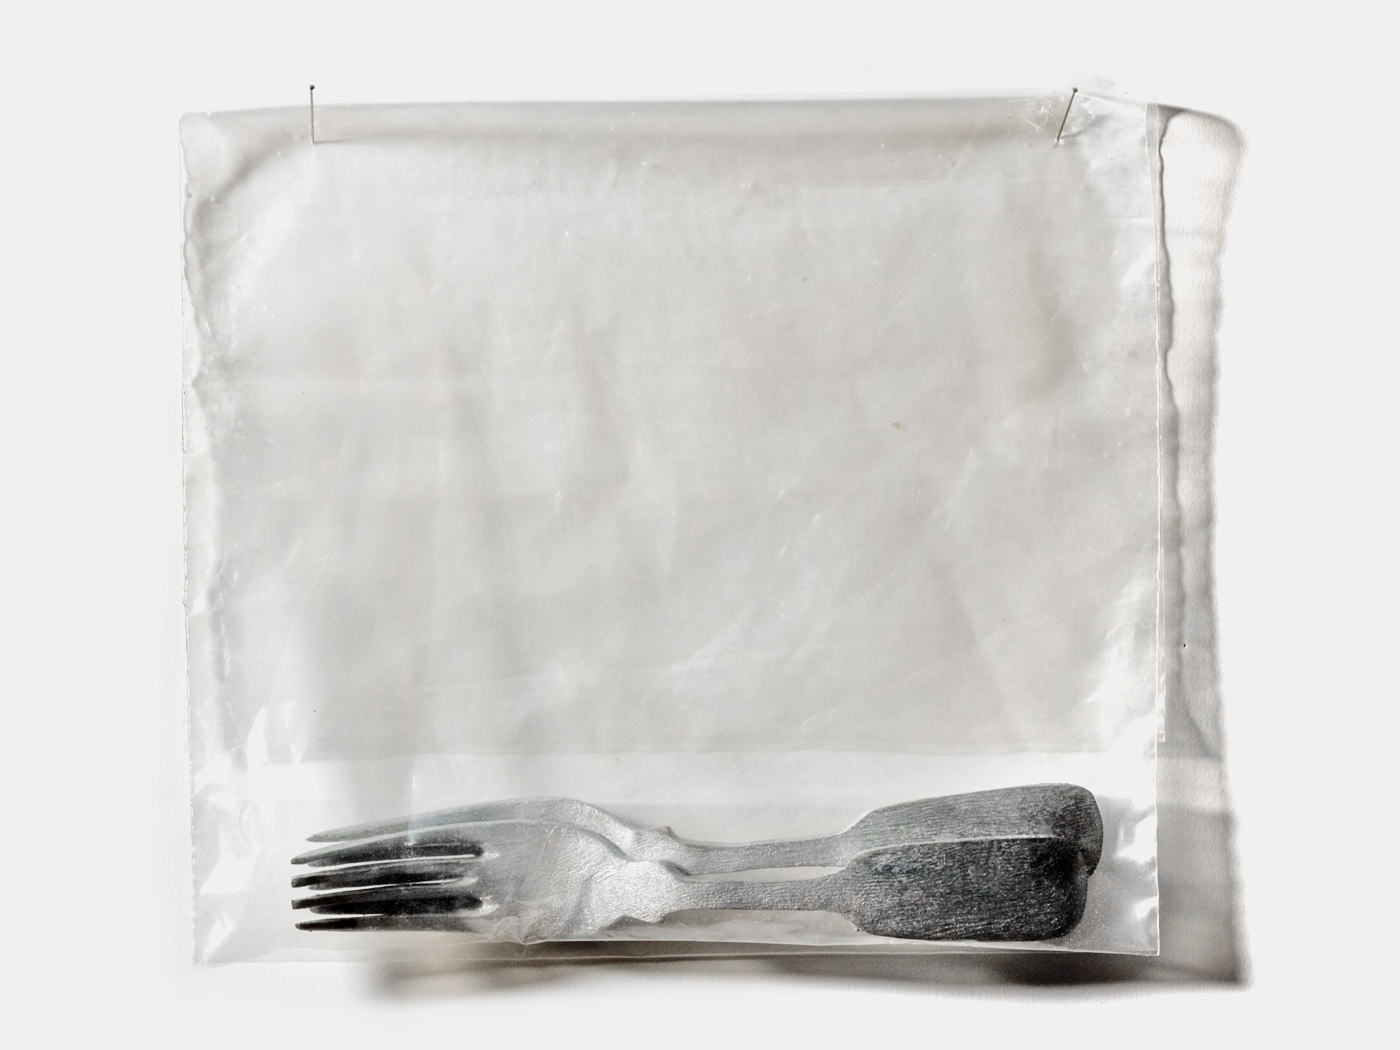 Forks / Carved & Painted Wood Plastic Bag. 2002.